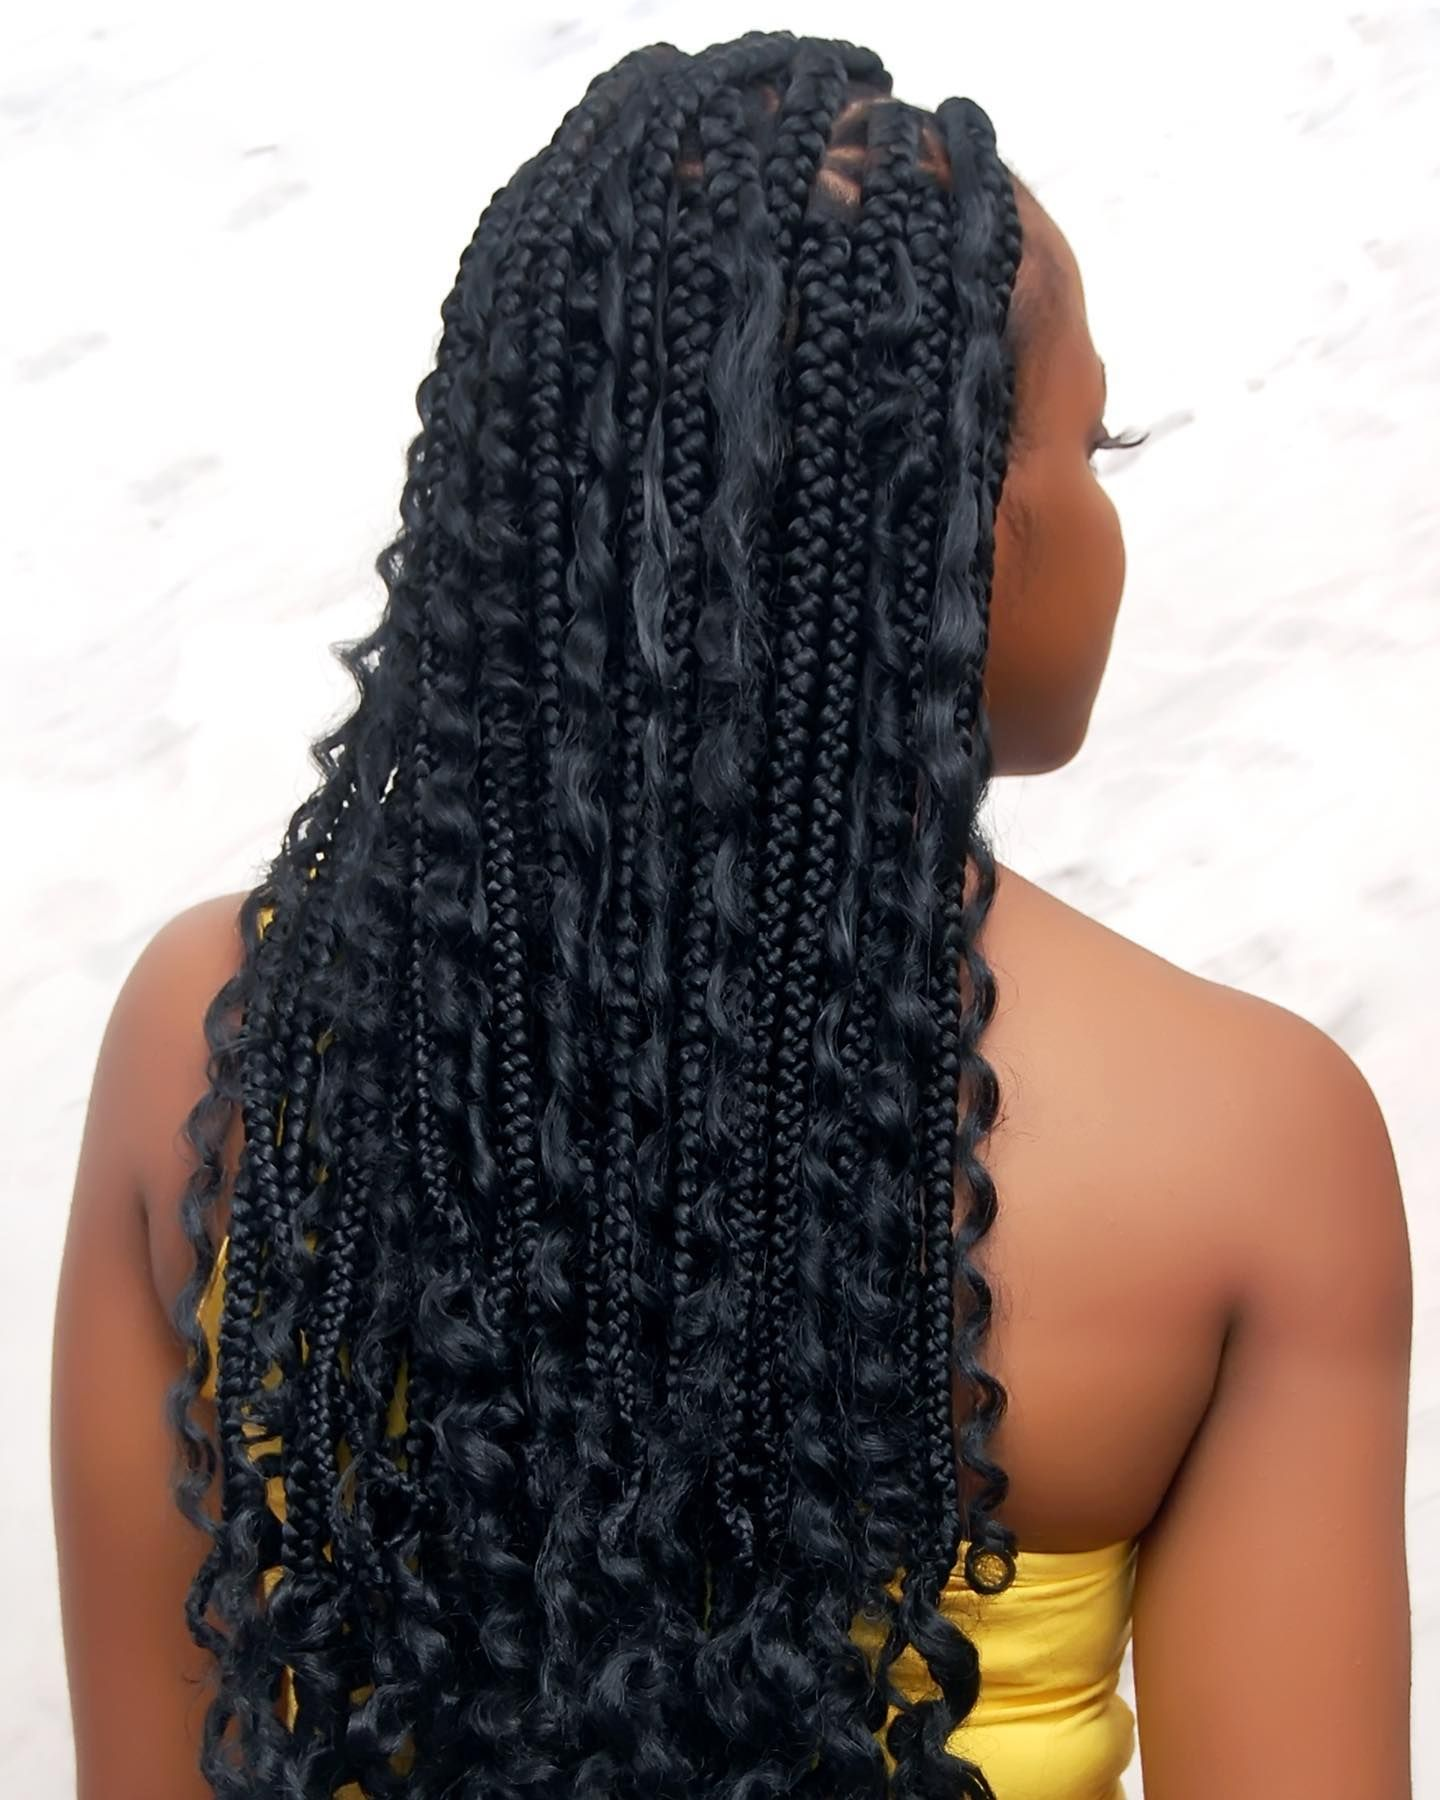 Isn T It Beautiful Lovely Box Braids And Curly Hair Mix Get Inspired By This Great Hairstyle Nonyehairbraidin Curly Hair Styles Box Braids Great Hairstyles